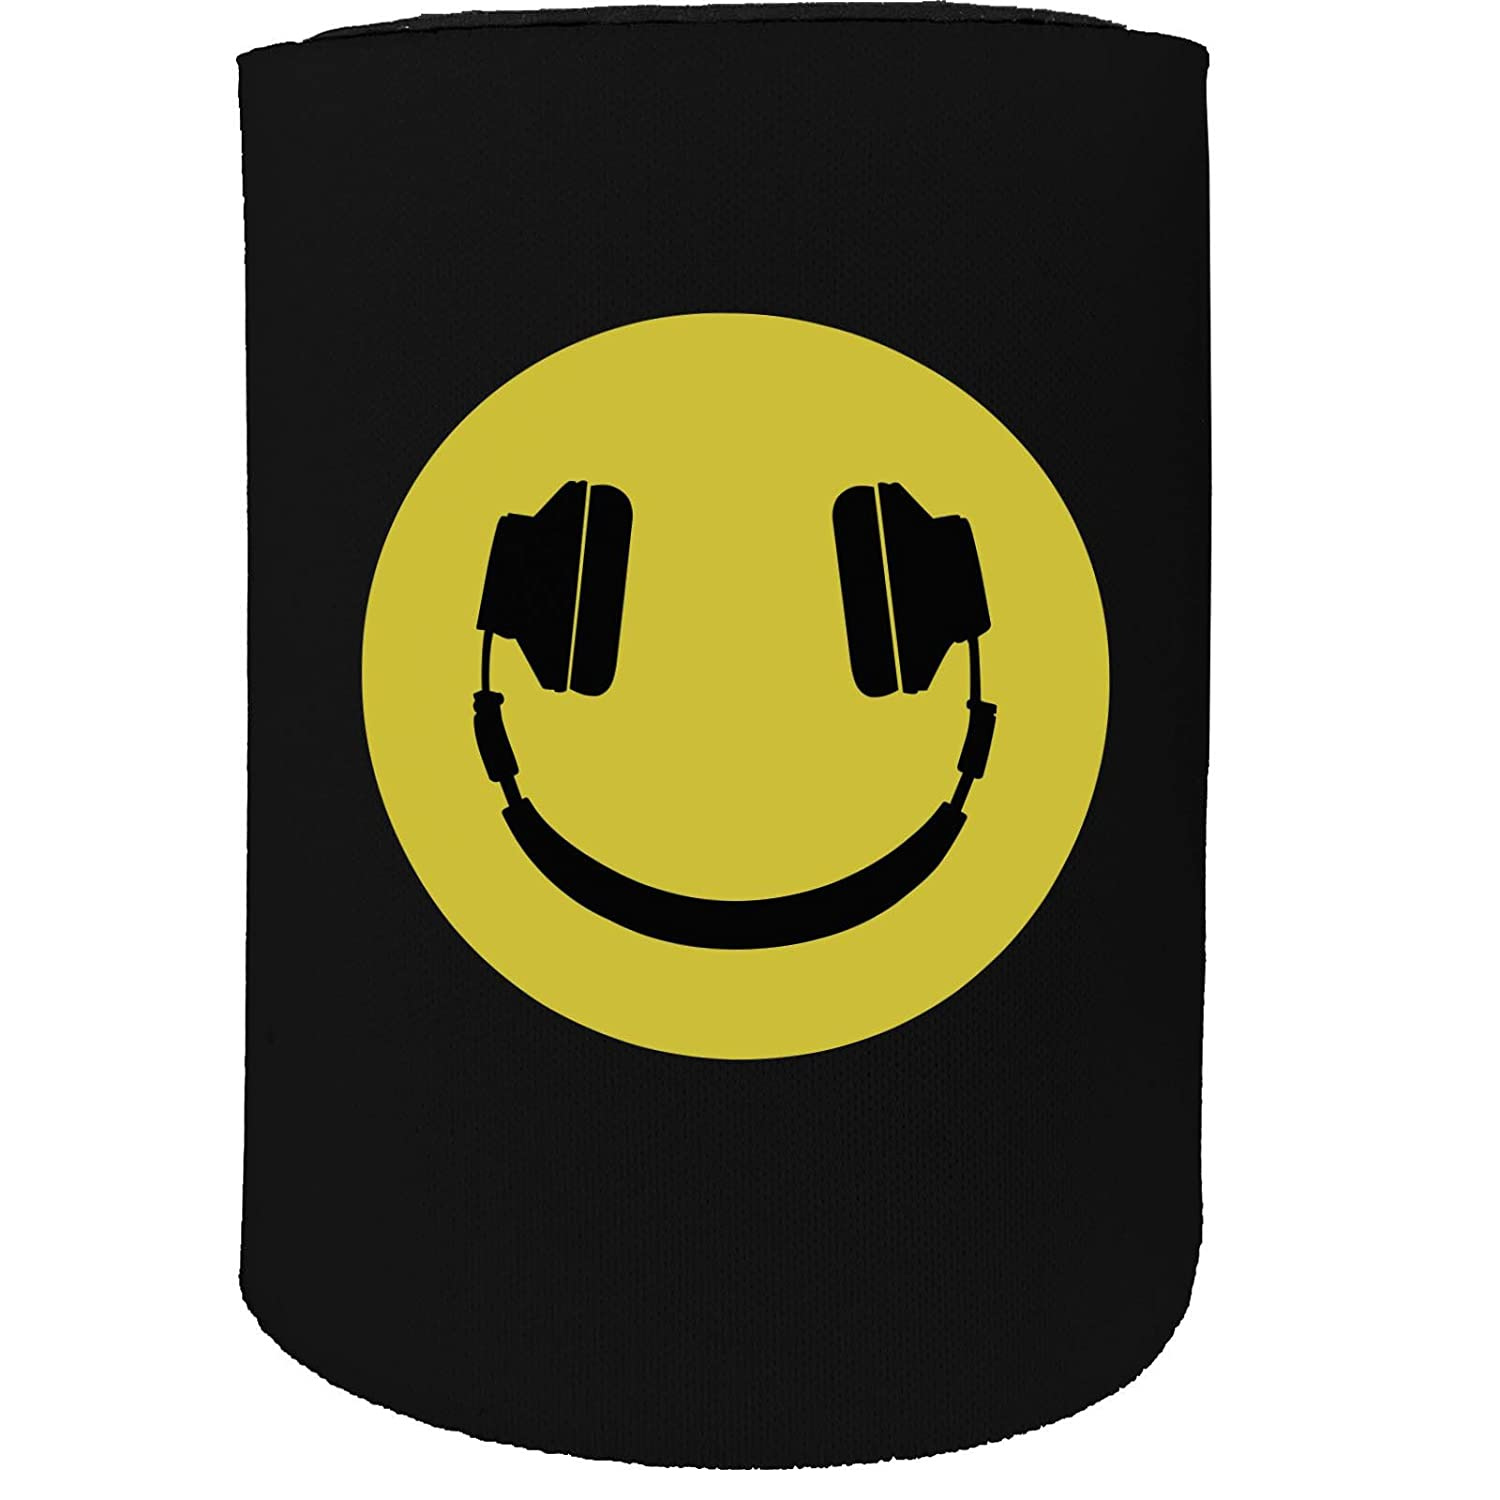 123t Stubby Holder - Headphone Smiley Dj Face Rave - Funny Novelty Birthday Gift Joke Beer Can Bottle Coolie Koozie Stubbie